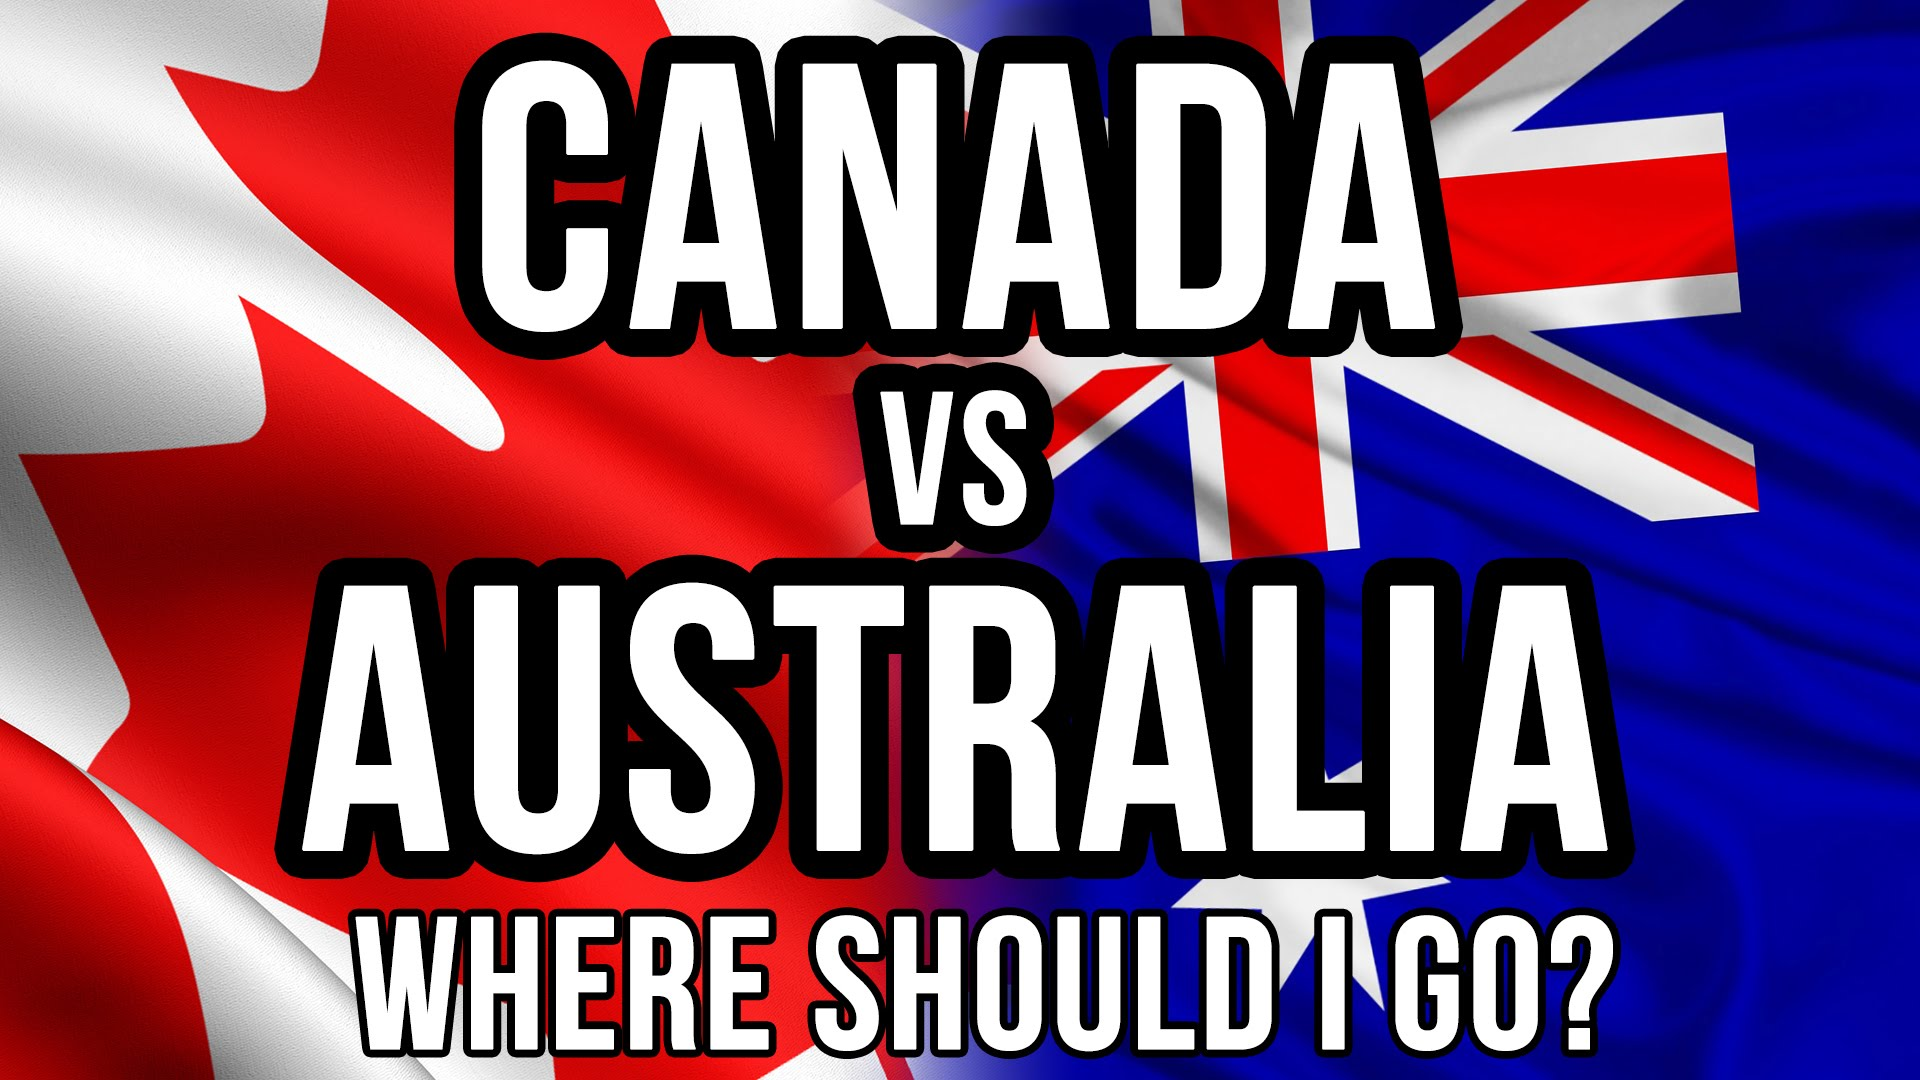 Which is the better country to settle permanently in, Canada or Australia?